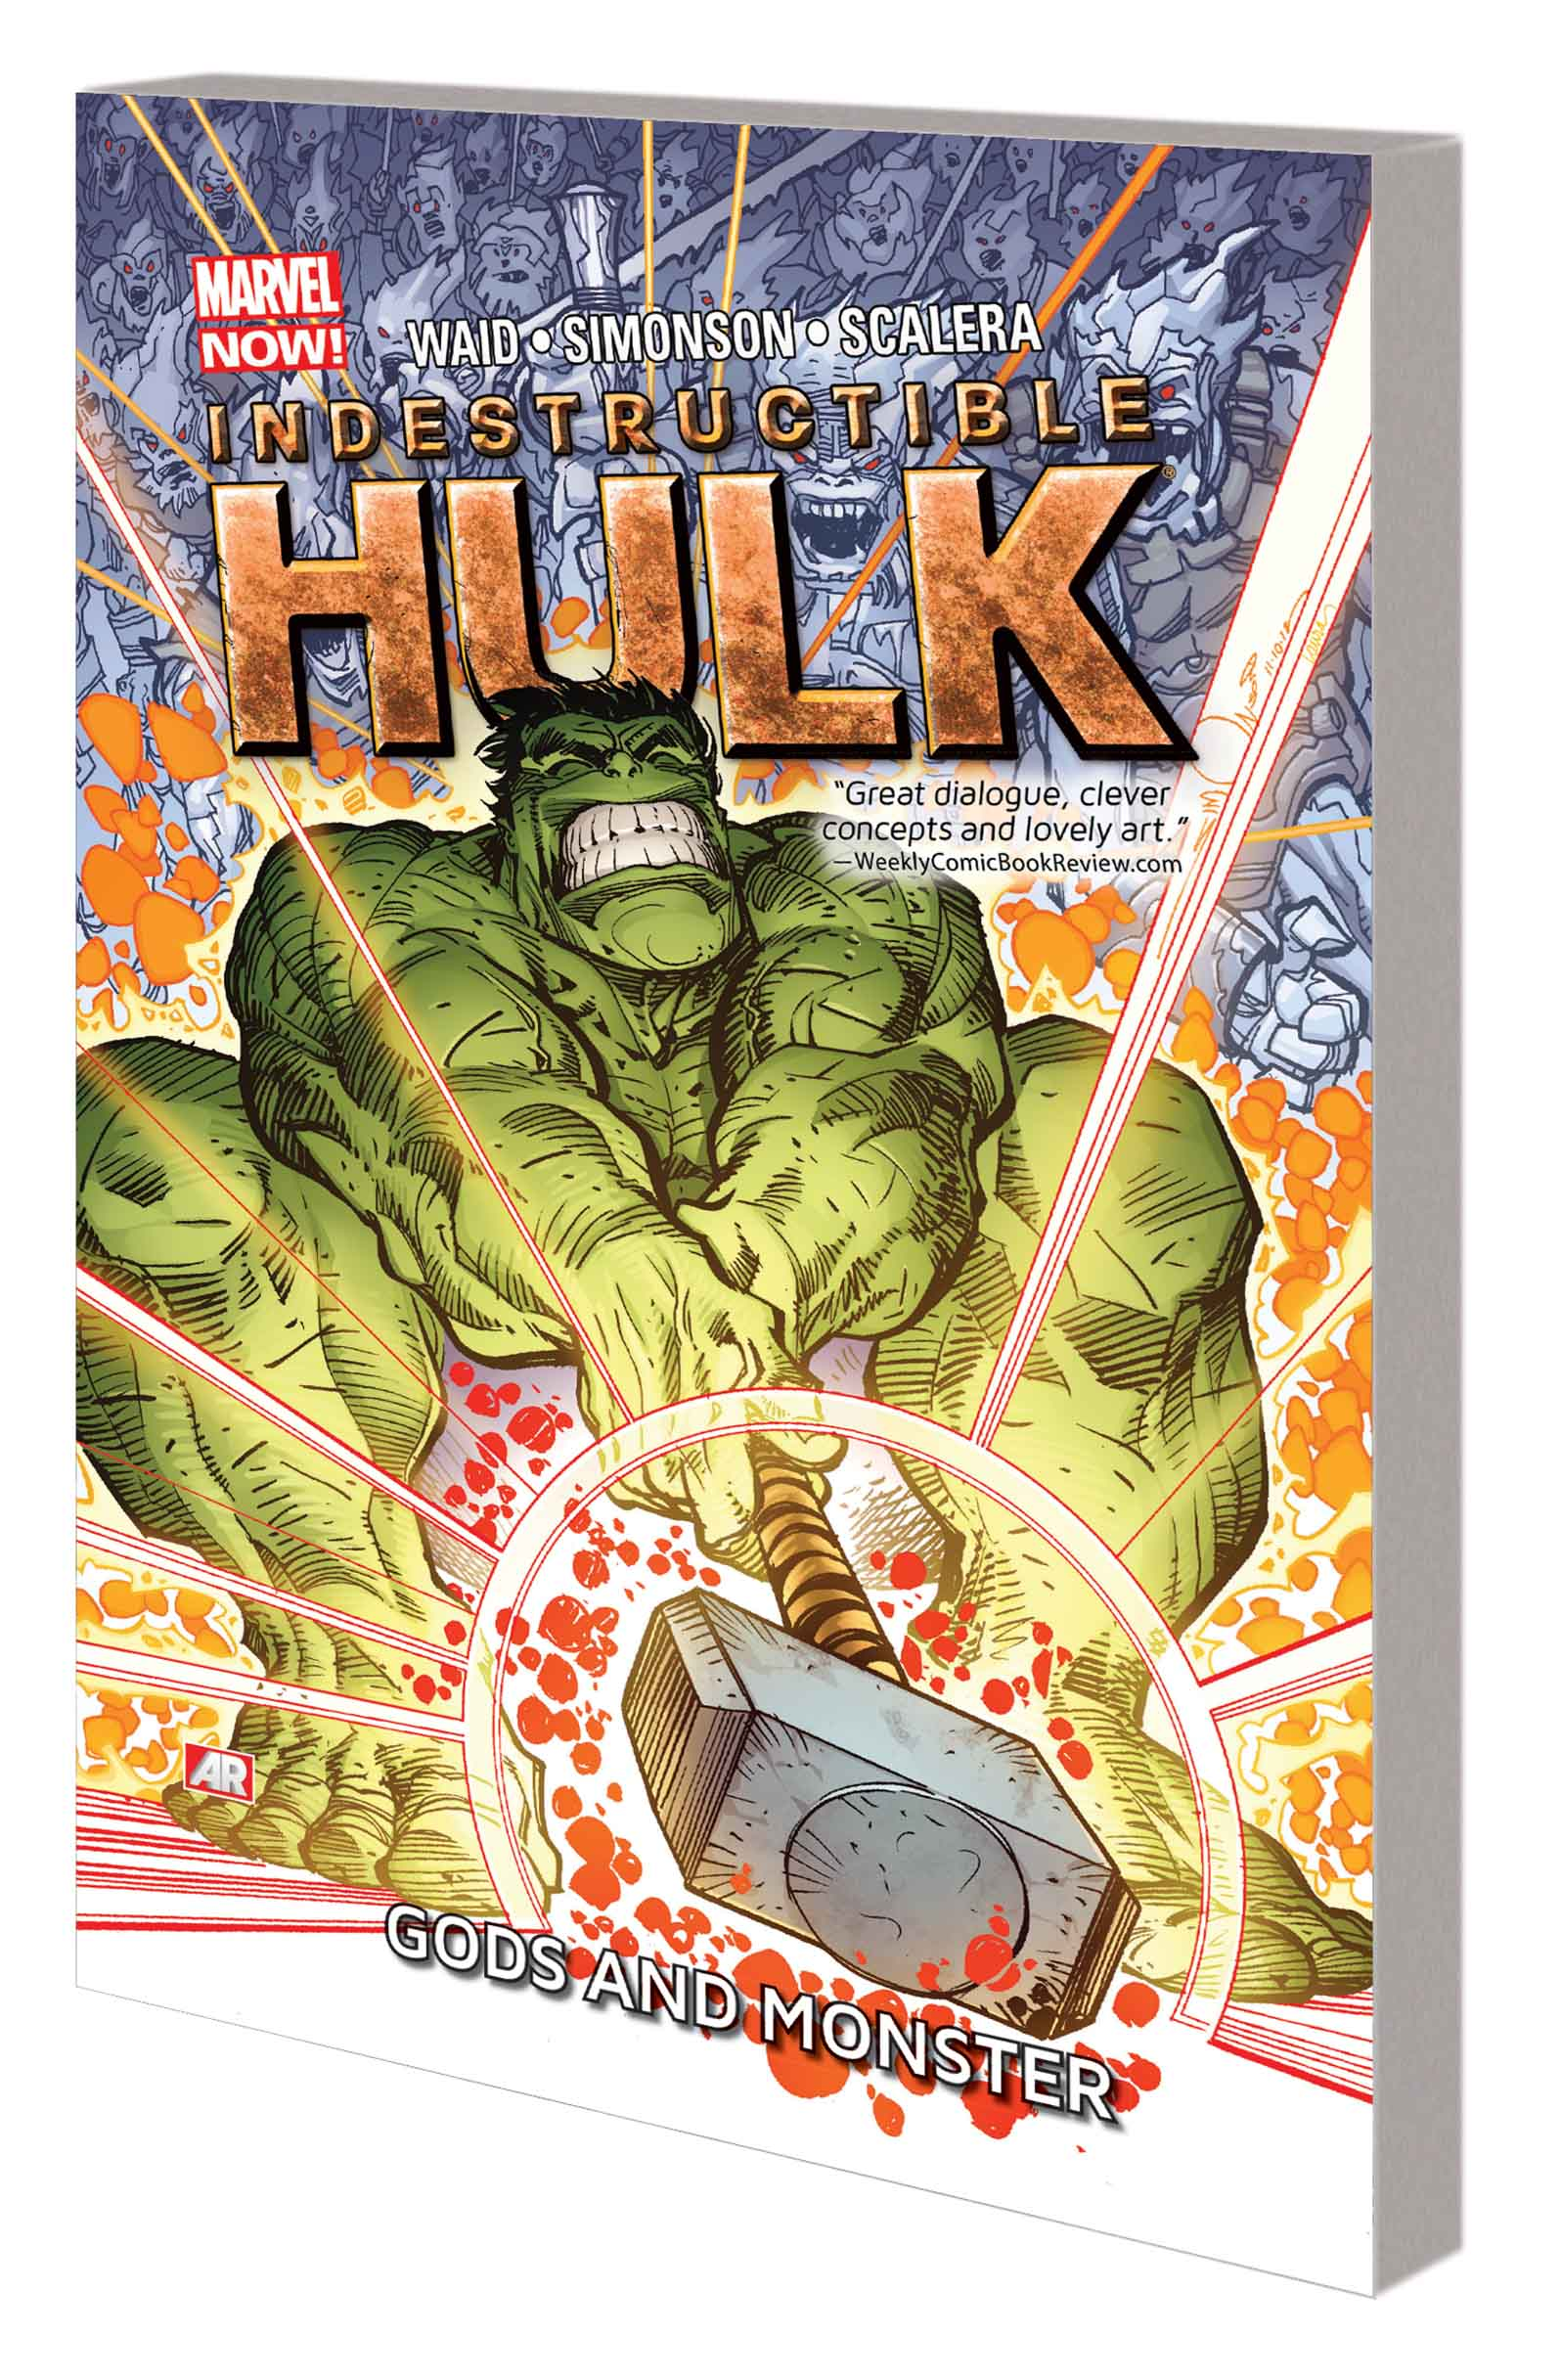 INDESTRUCTIBLE HULK VOL. 2: GODS AND MONSTER TPB (Trade Paperback)